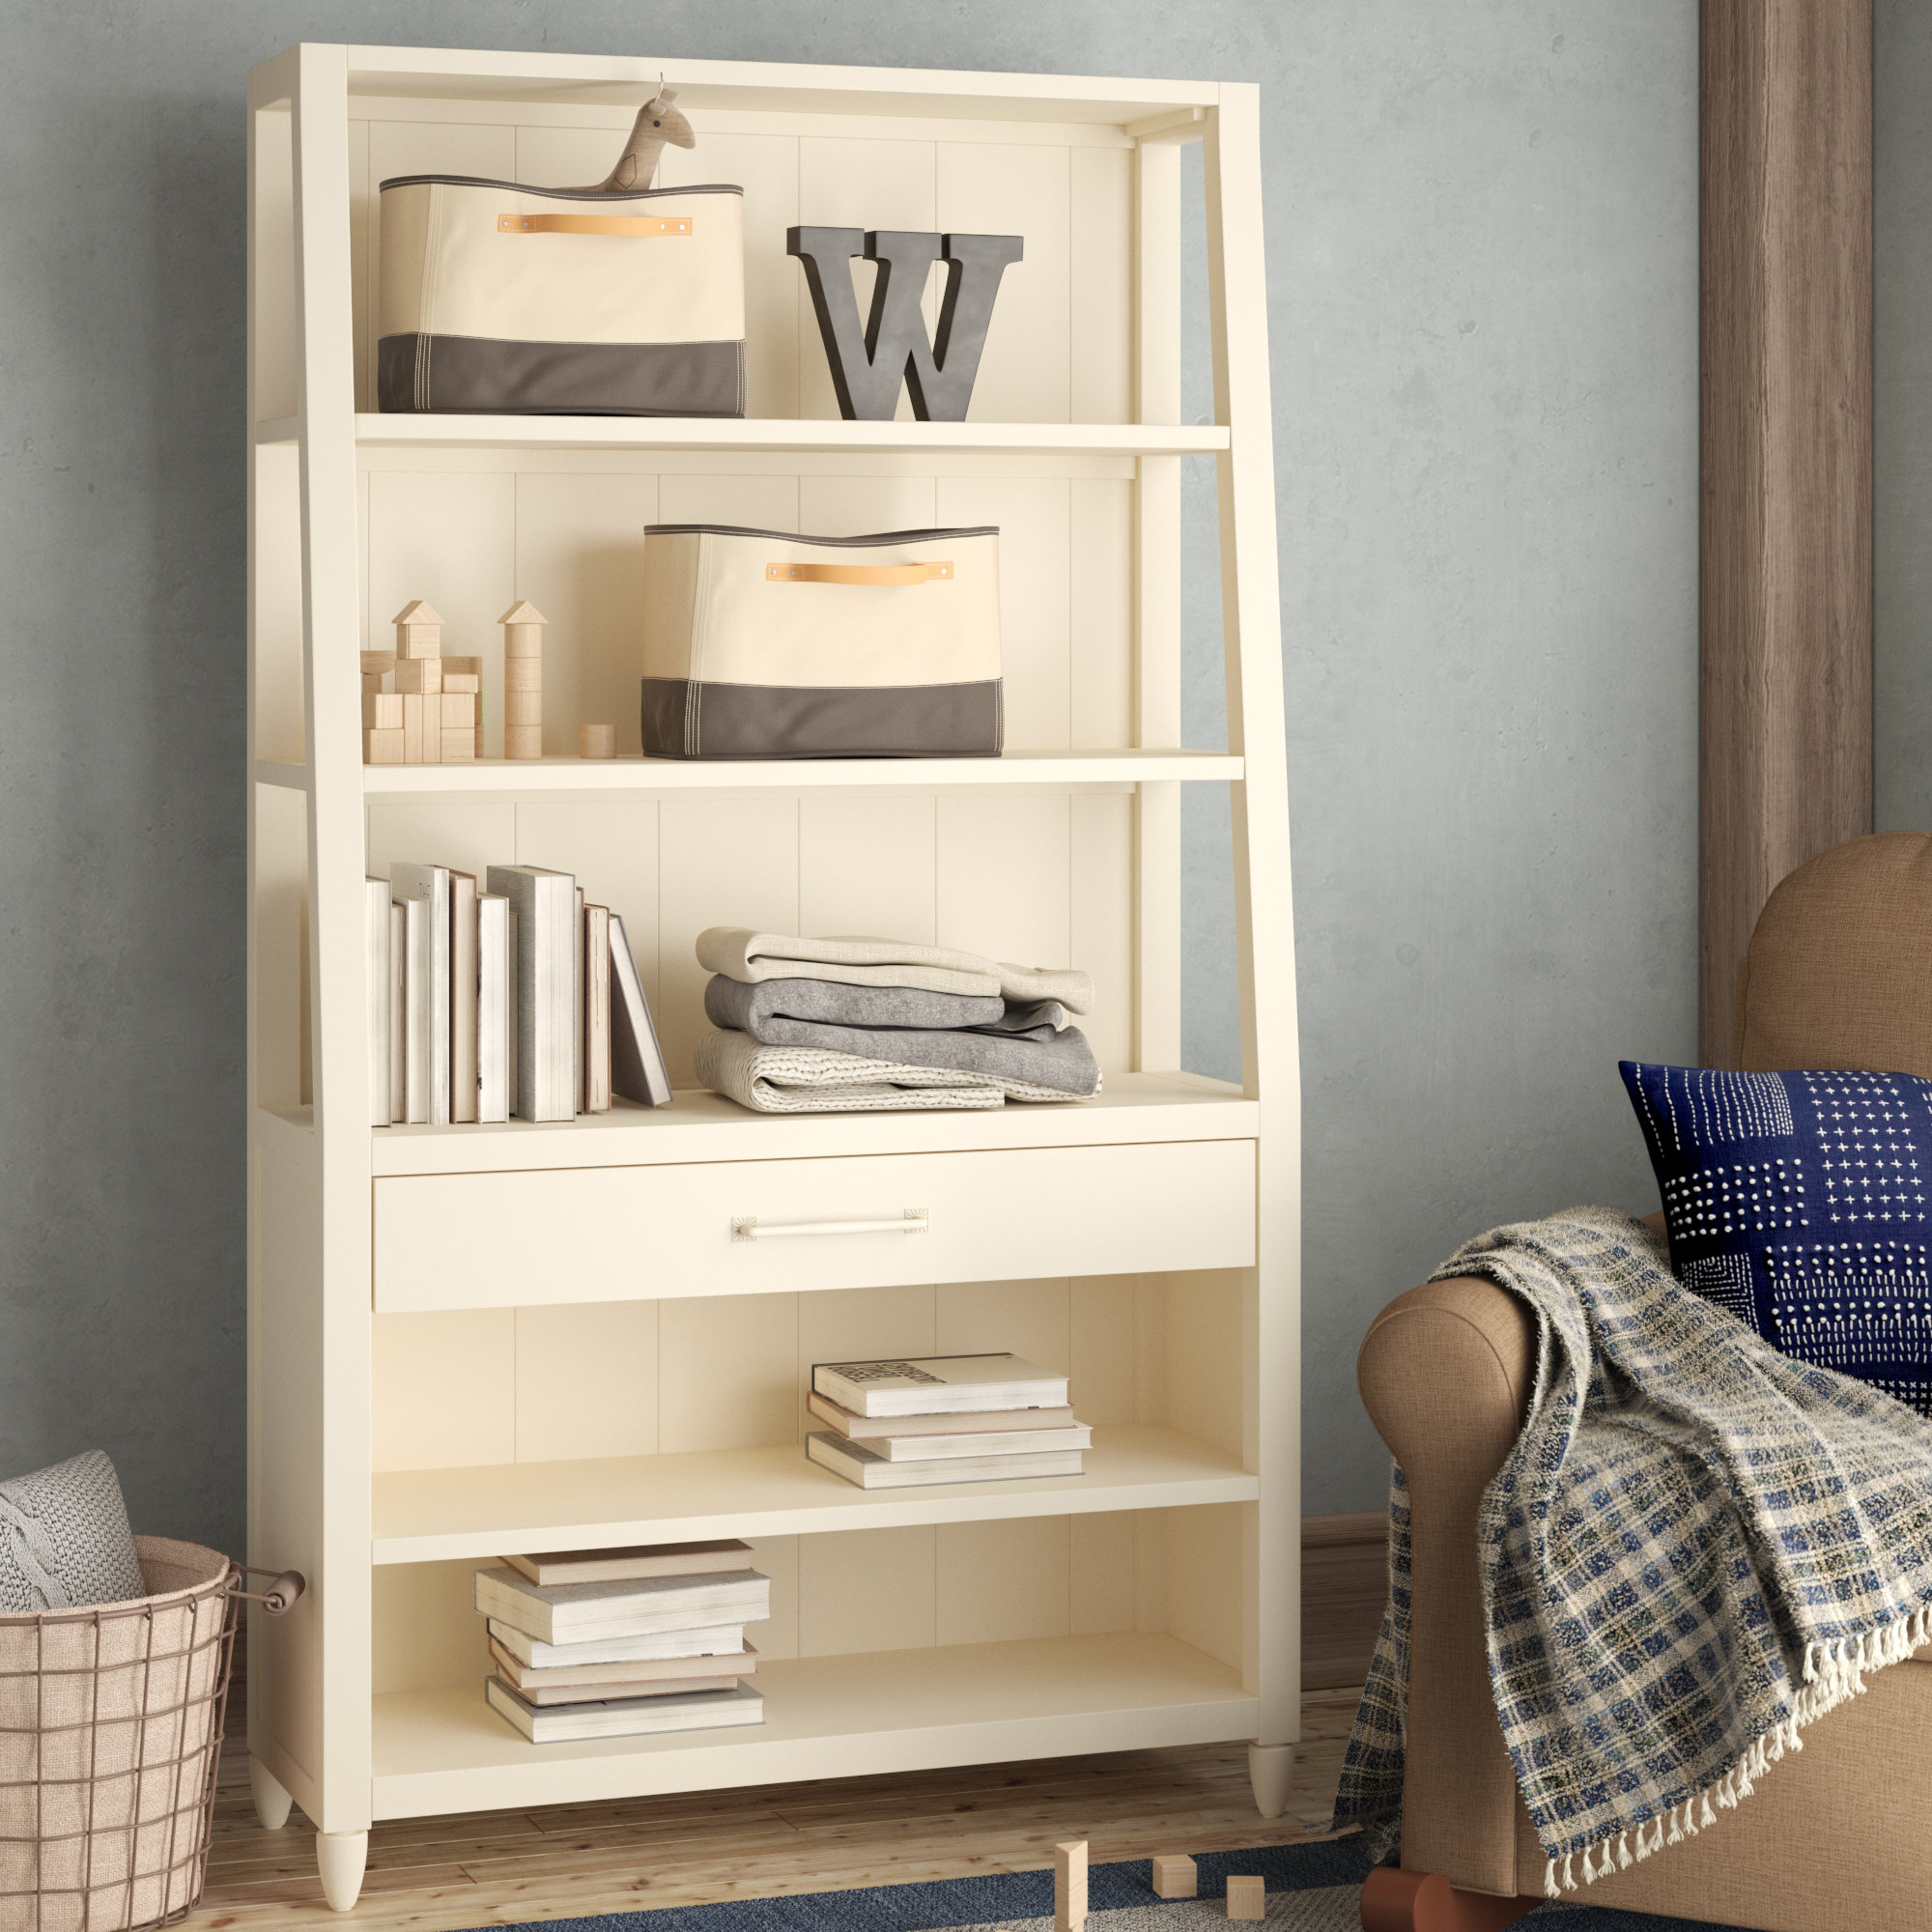 2019 Oridatown Standard Bookcases Intended For Affonso Standard Bookcase & Reviews (View 10 of 20)